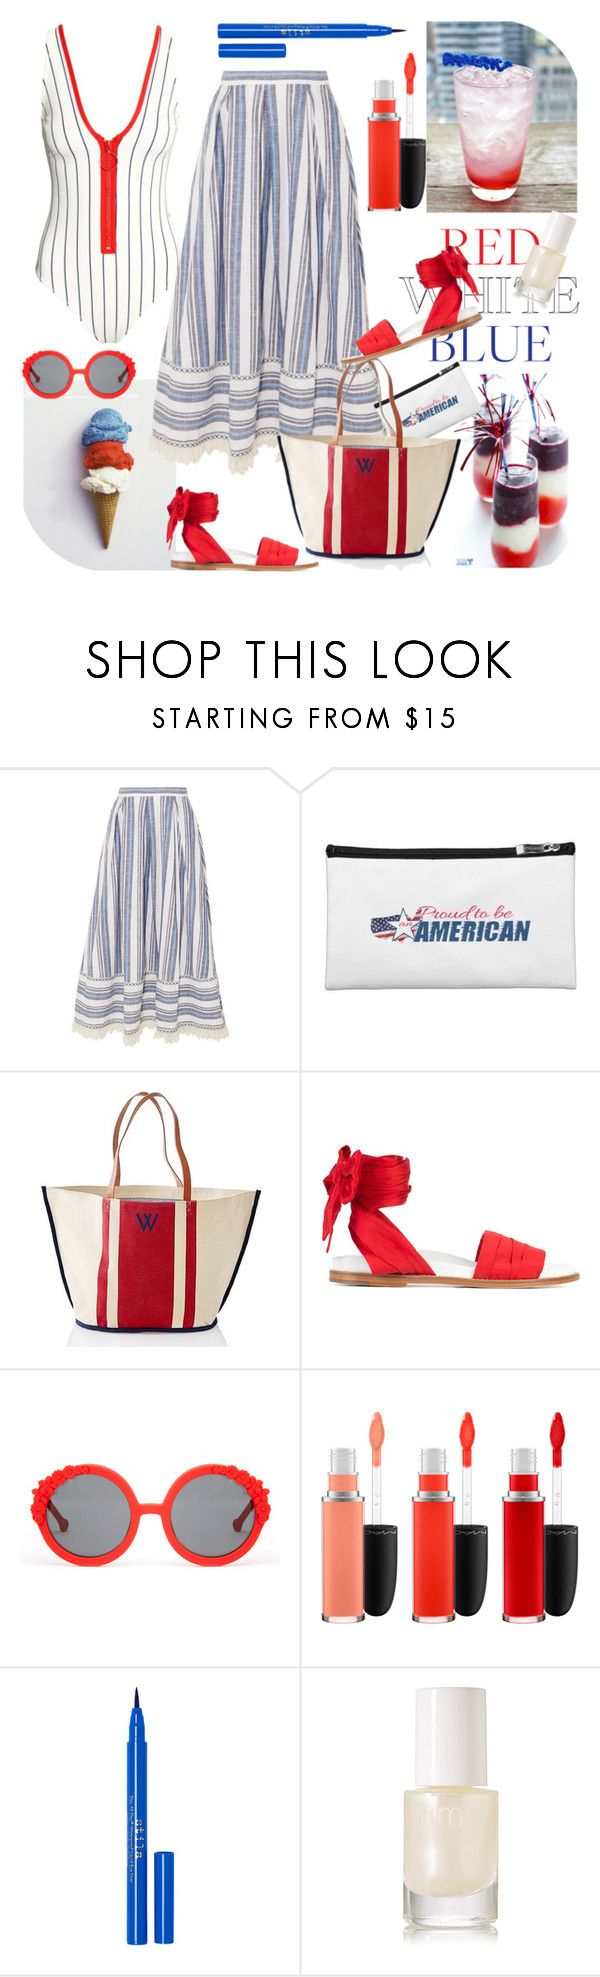 """Red, White & Blue Summer Time"" by ellie366 ❤ liked on Polyvore featuring Gül Hürgel, Mark & Graham, Marques'Almeida, Preen, MAC Cosmetics, Stila, rms beauty, beachday, stripes and summerstyle"